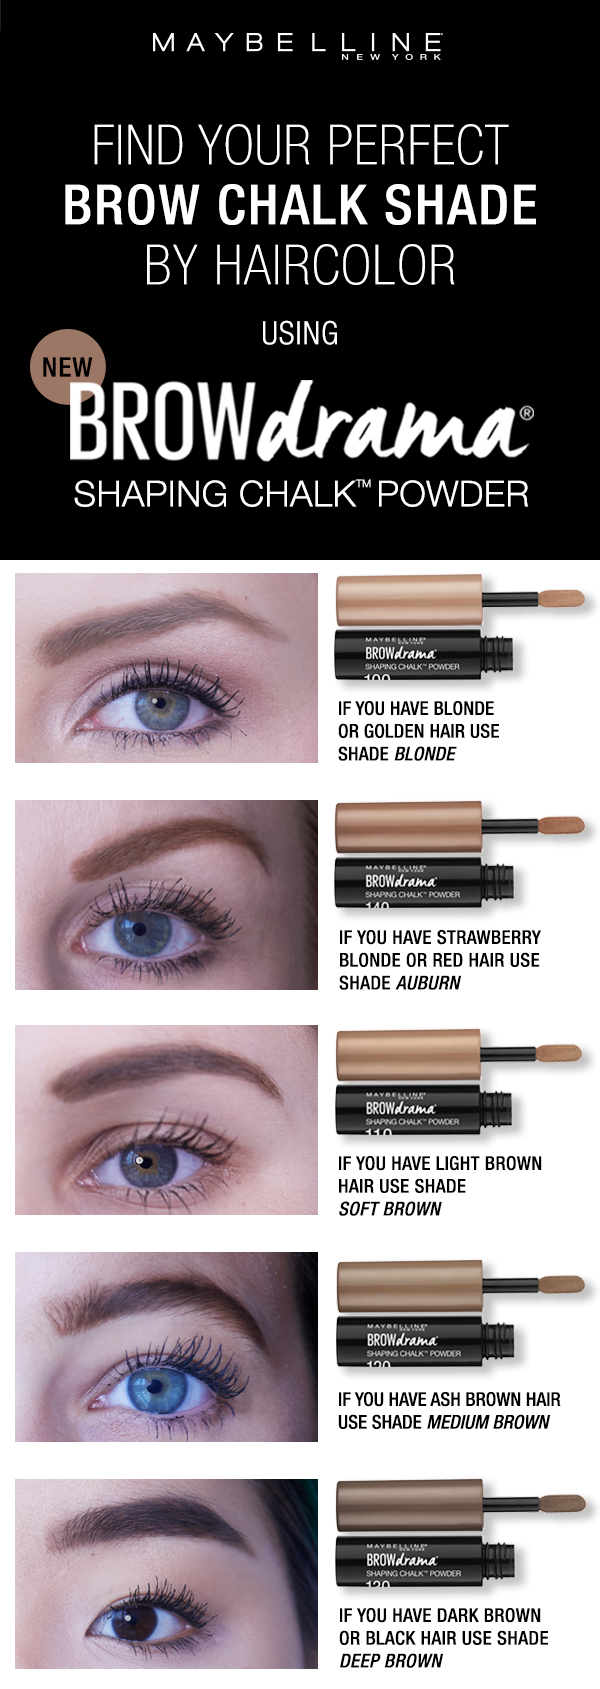 03e5069634f Not sure how to find your brow shade in the NEW Maybelline Brow Drama  Shaping Chalk Powder? Follow this easy guide to pick your perfect brow  shade for your ...